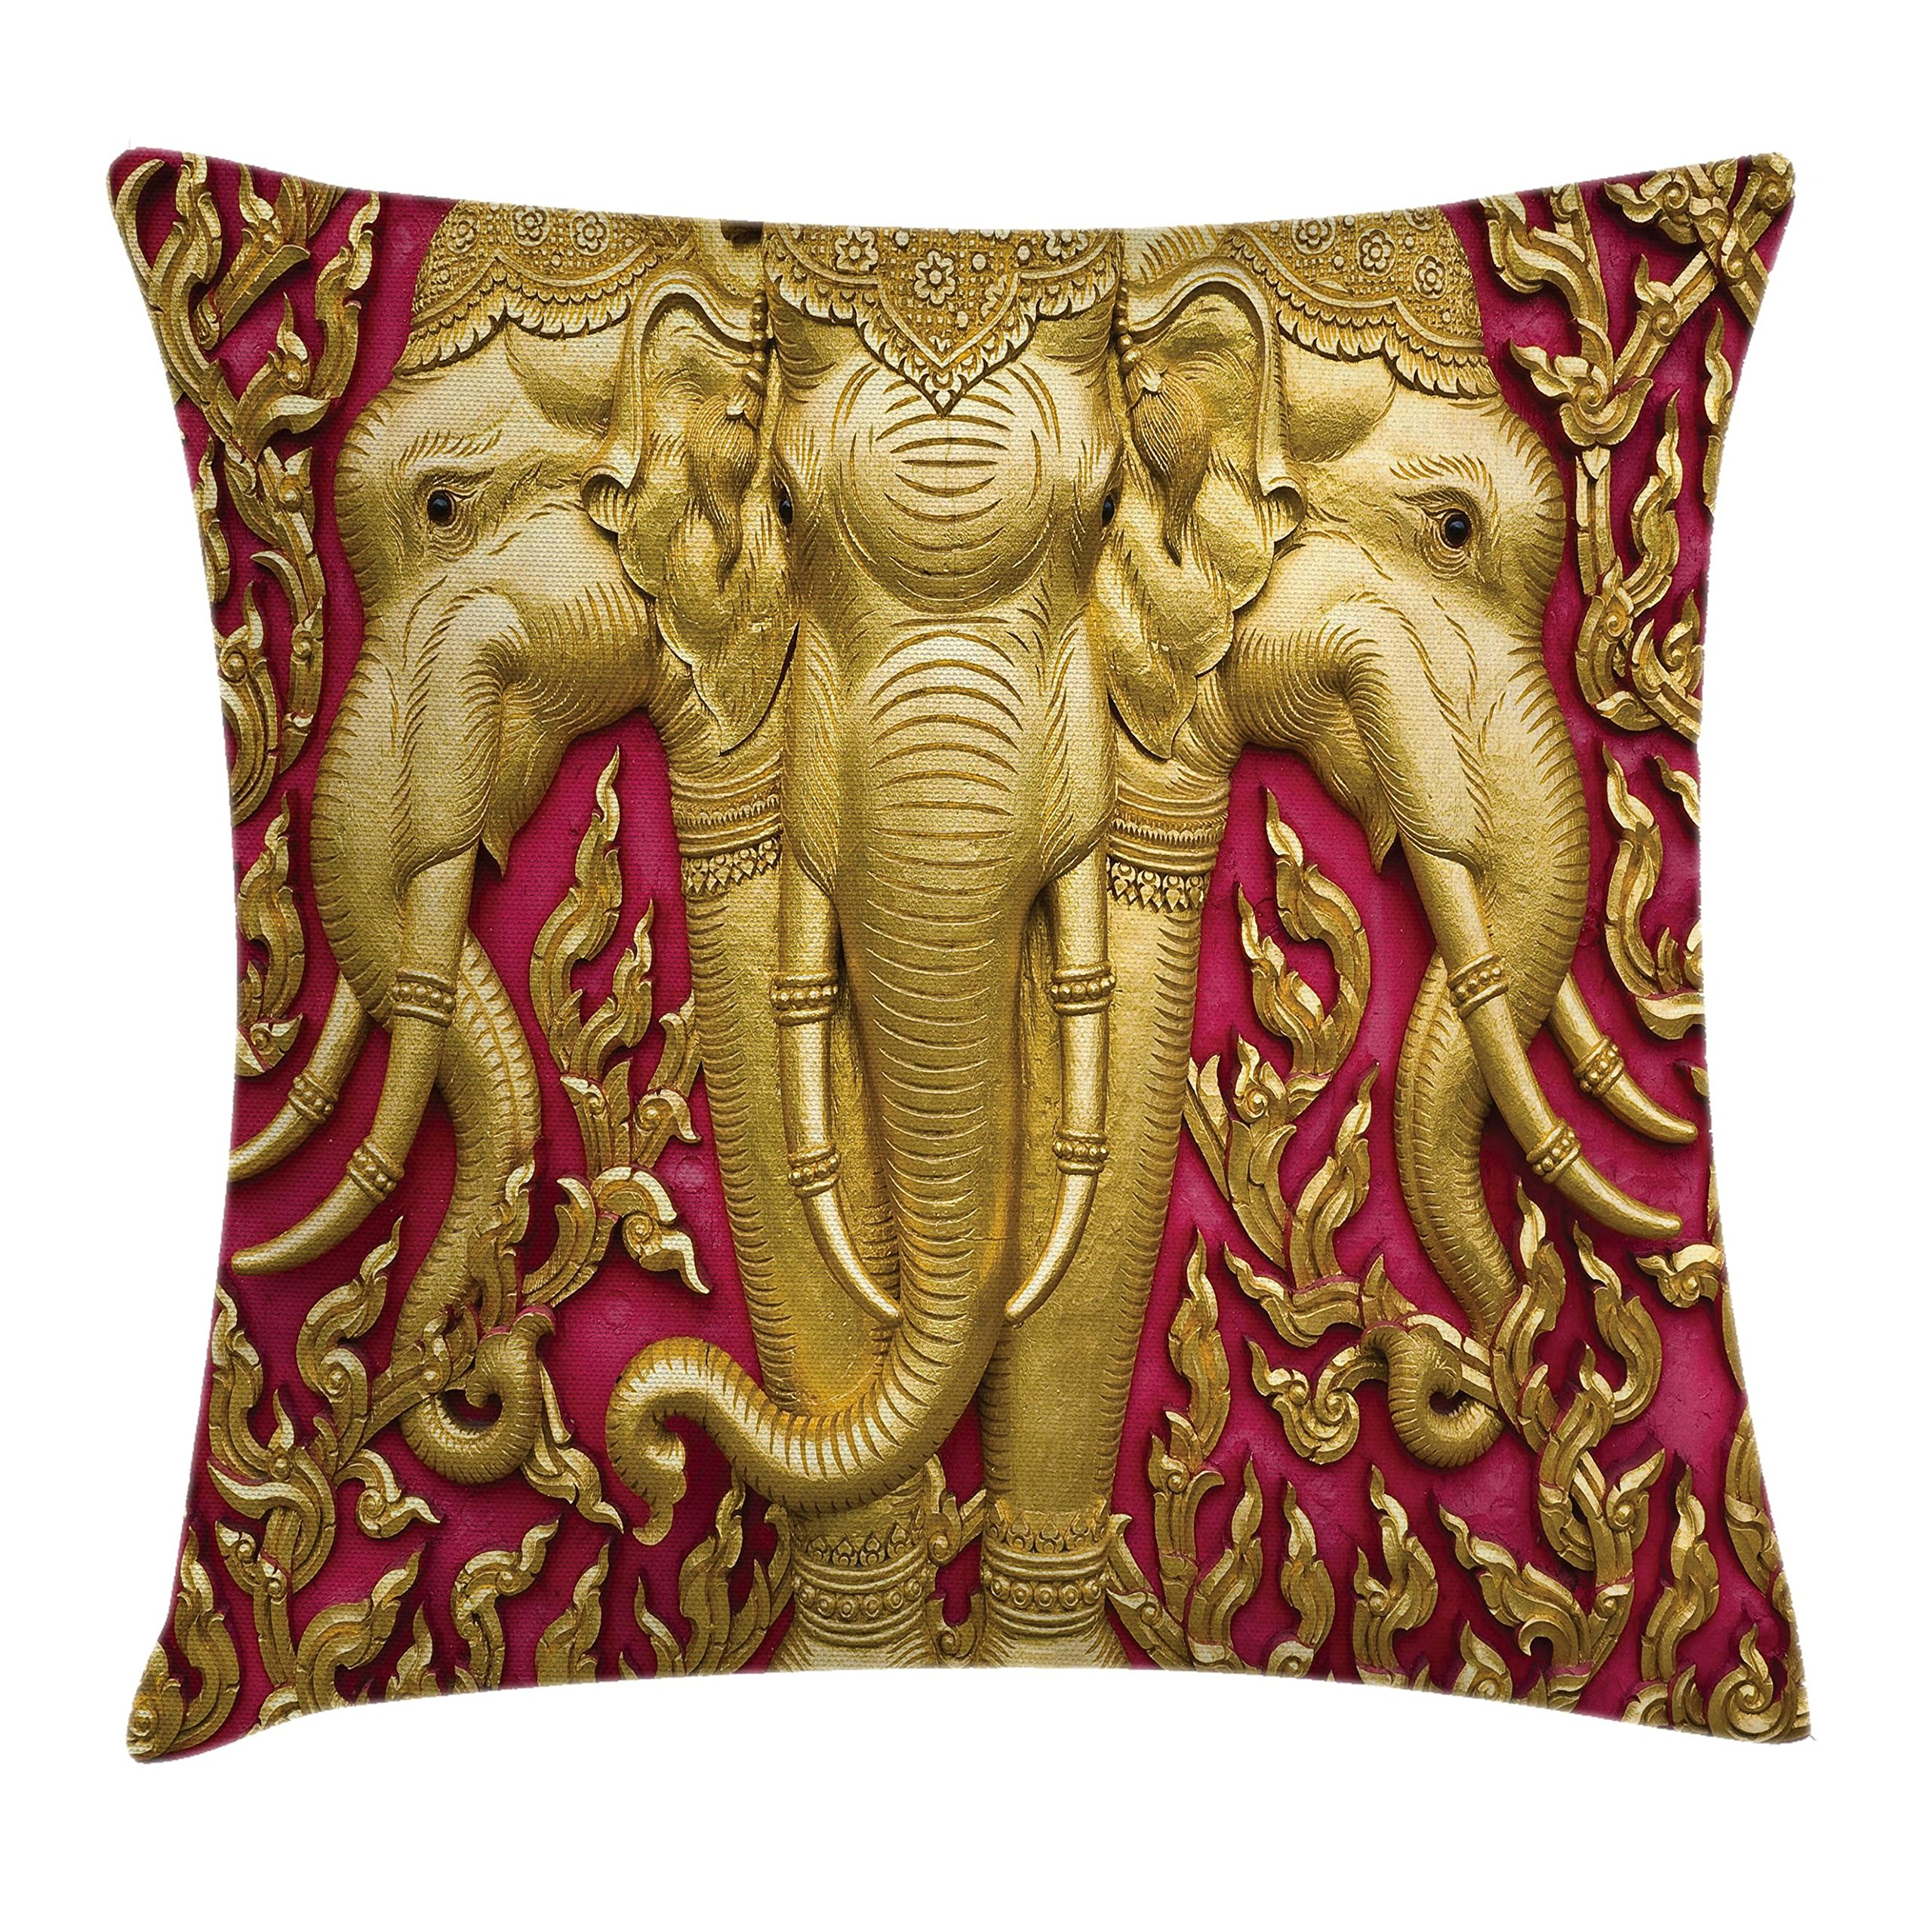 Ambesonne Elephant Throw Pillow Cushion Cover, Yellow Toned Elephant Motif on Door Thai Temple Spirituality Statue Classic, Decorative Square Accent Pillow Case, 18 X 18 Inches, Fuchsia Mustard by Ambesonne